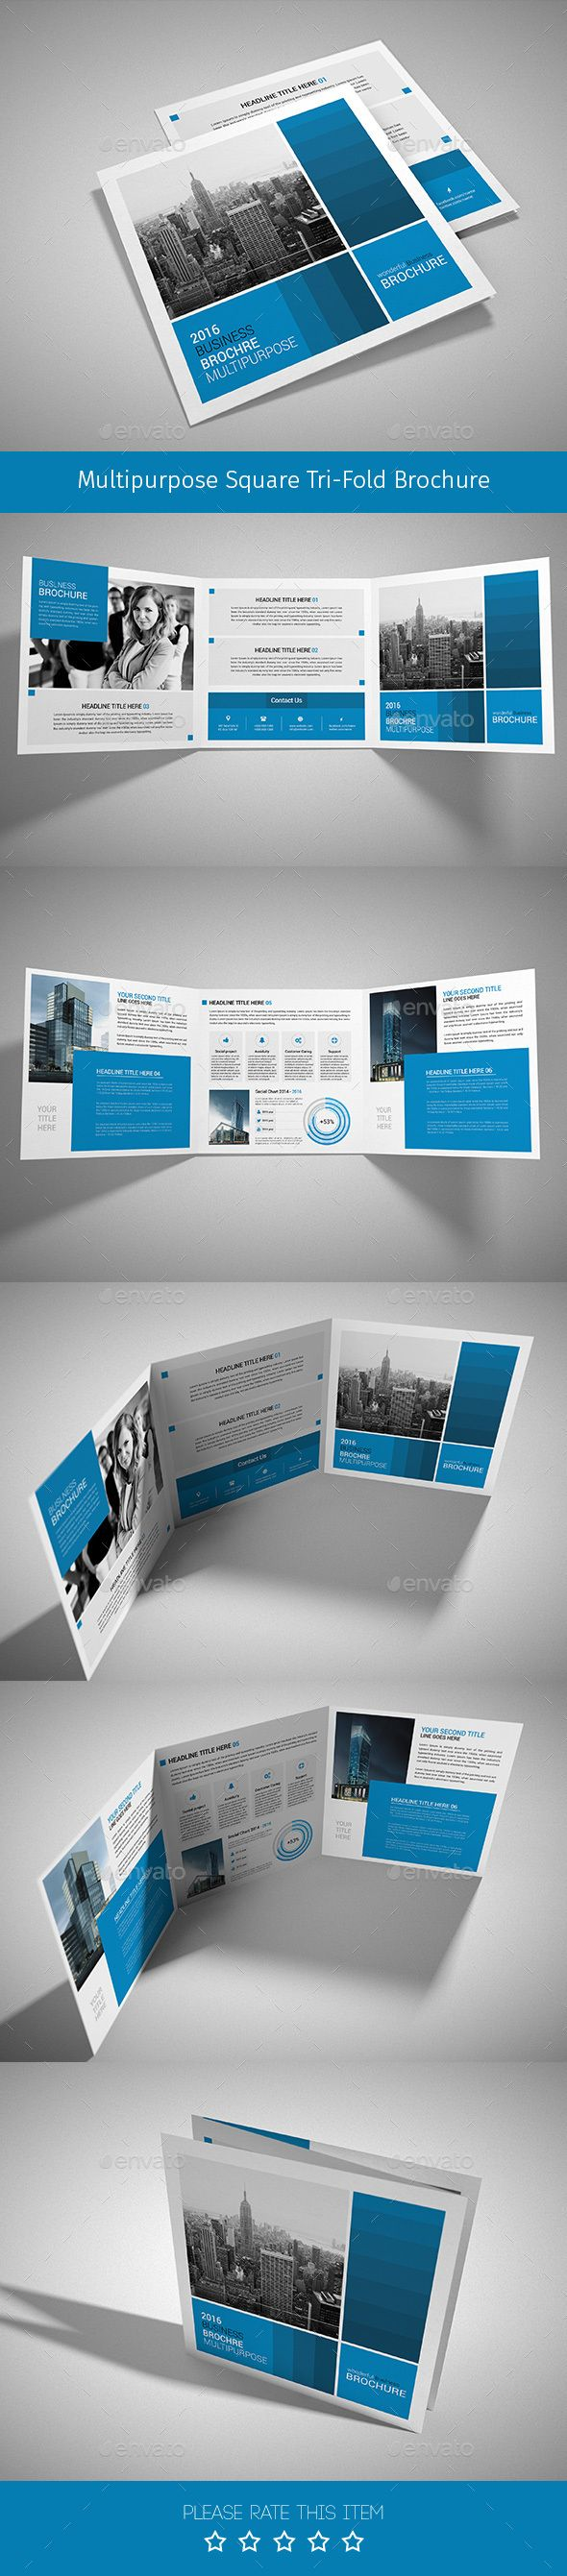 Corporate Tri-fold Square Brochure 07